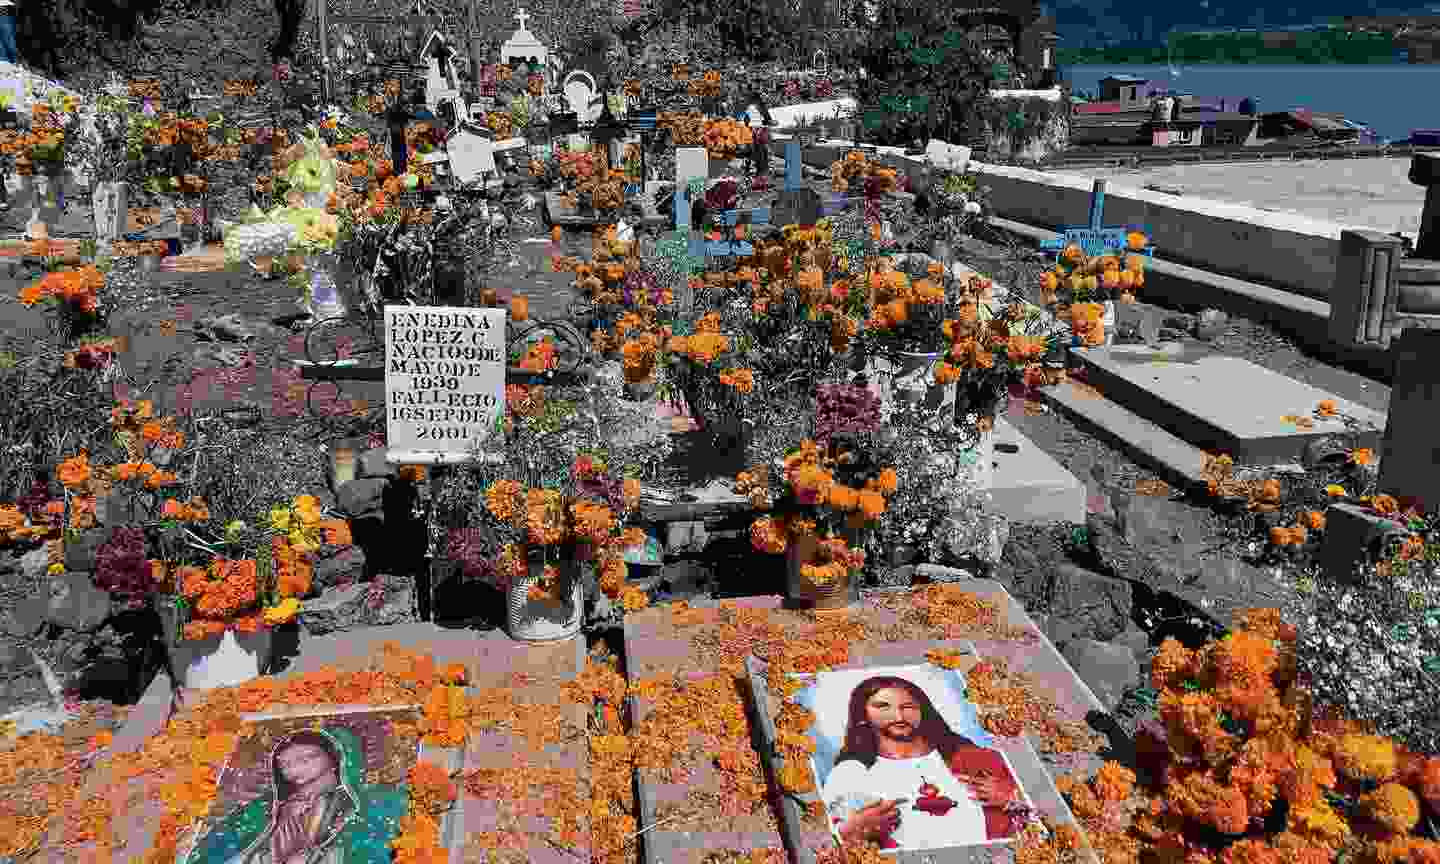 Day of the Dead decorations at the local graveyard on Janitzio island (Dreamstime)